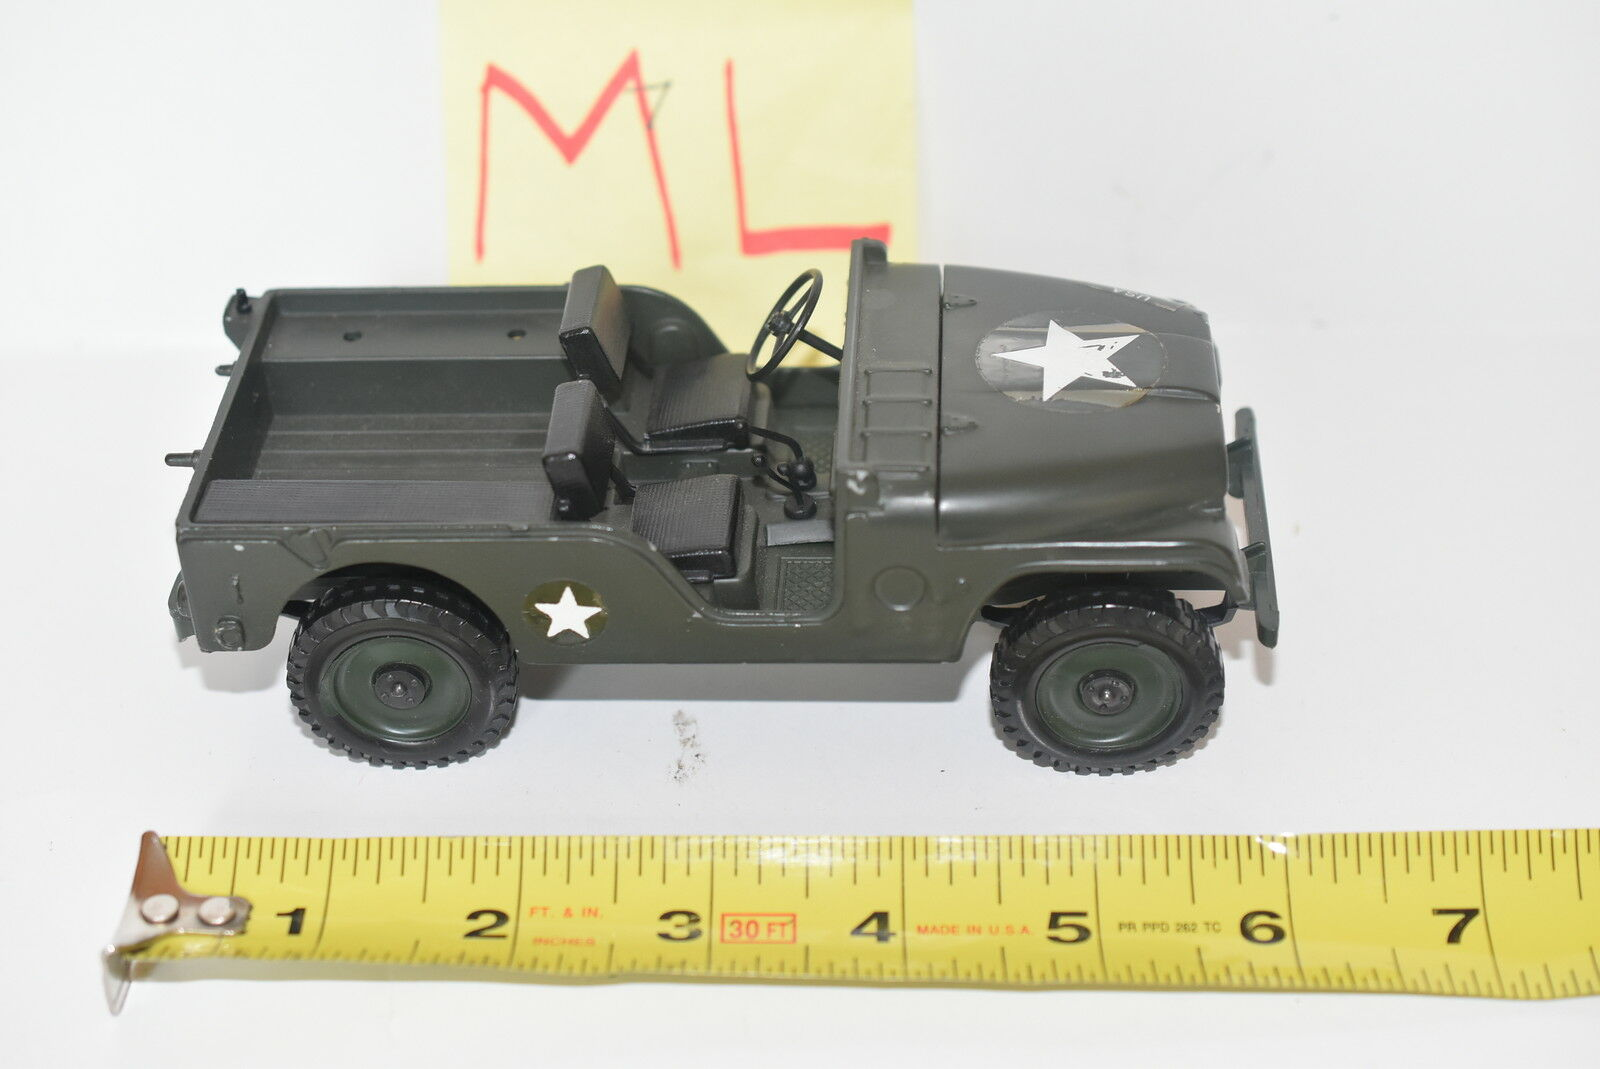 Mattel MEBE TOYS JEEP MILITAIRE Willys MADE IN ITALY SCALE 1 25 - loose